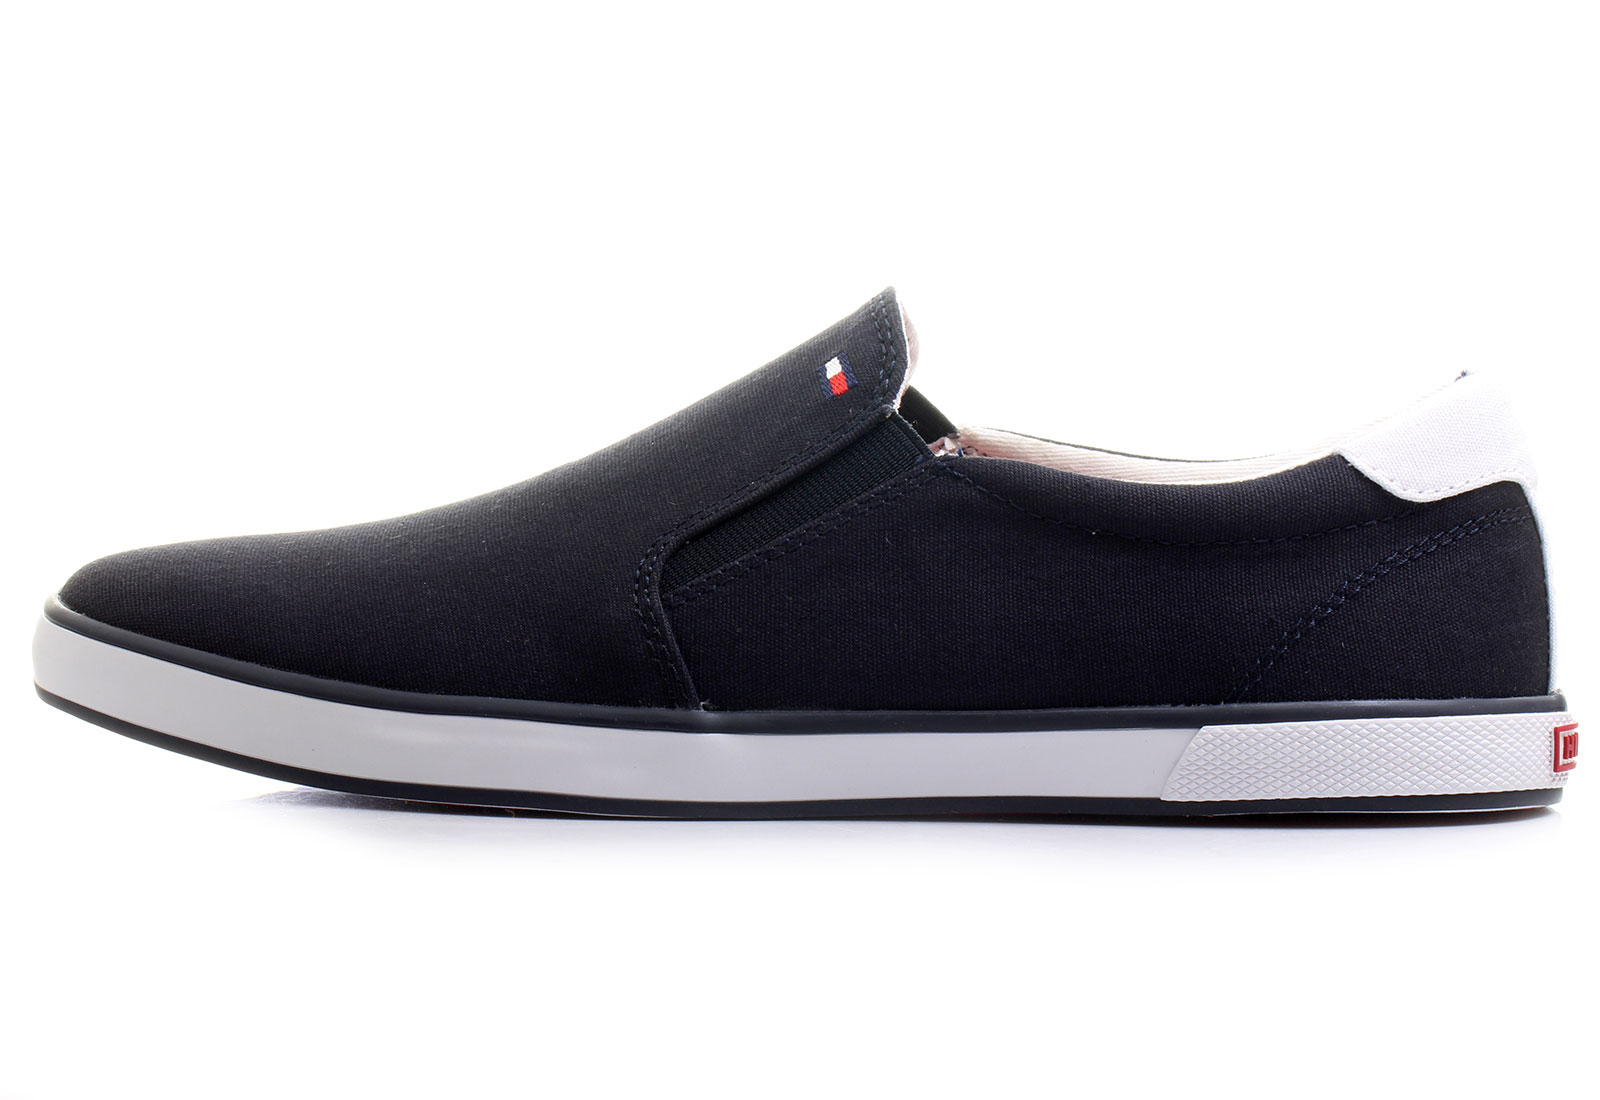 tommy hilfiger slip on harlow 2d 16s 0903 403 online shop for sneakers shoes and boots. Black Bedroom Furniture Sets. Home Design Ideas